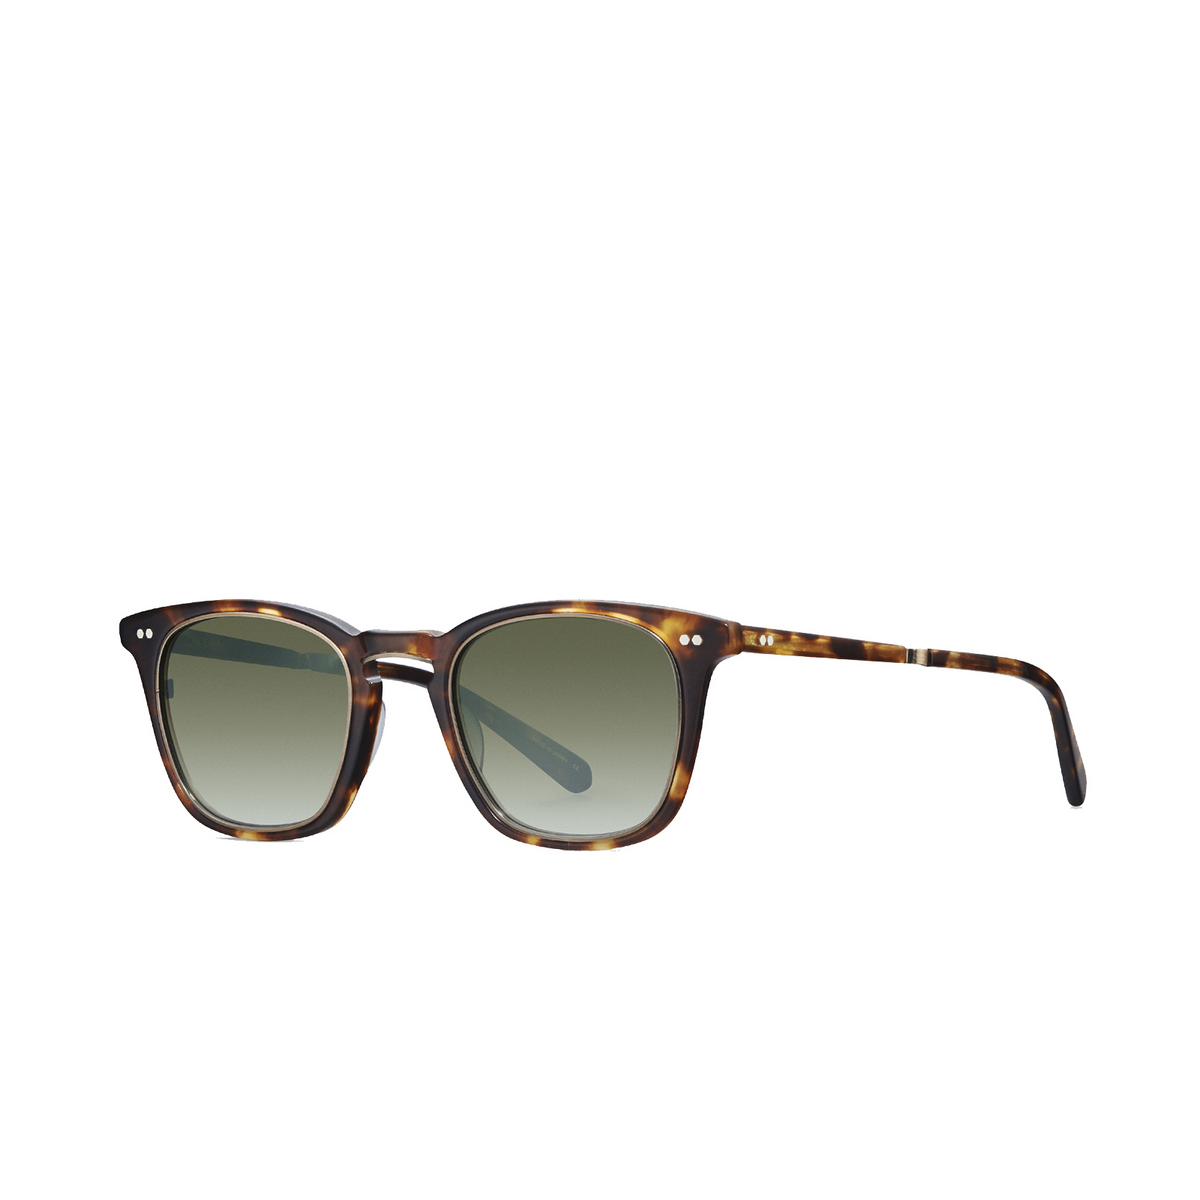 Mr. Leight® Square Sunglasses: Getty S color Mpl-atg/plm.